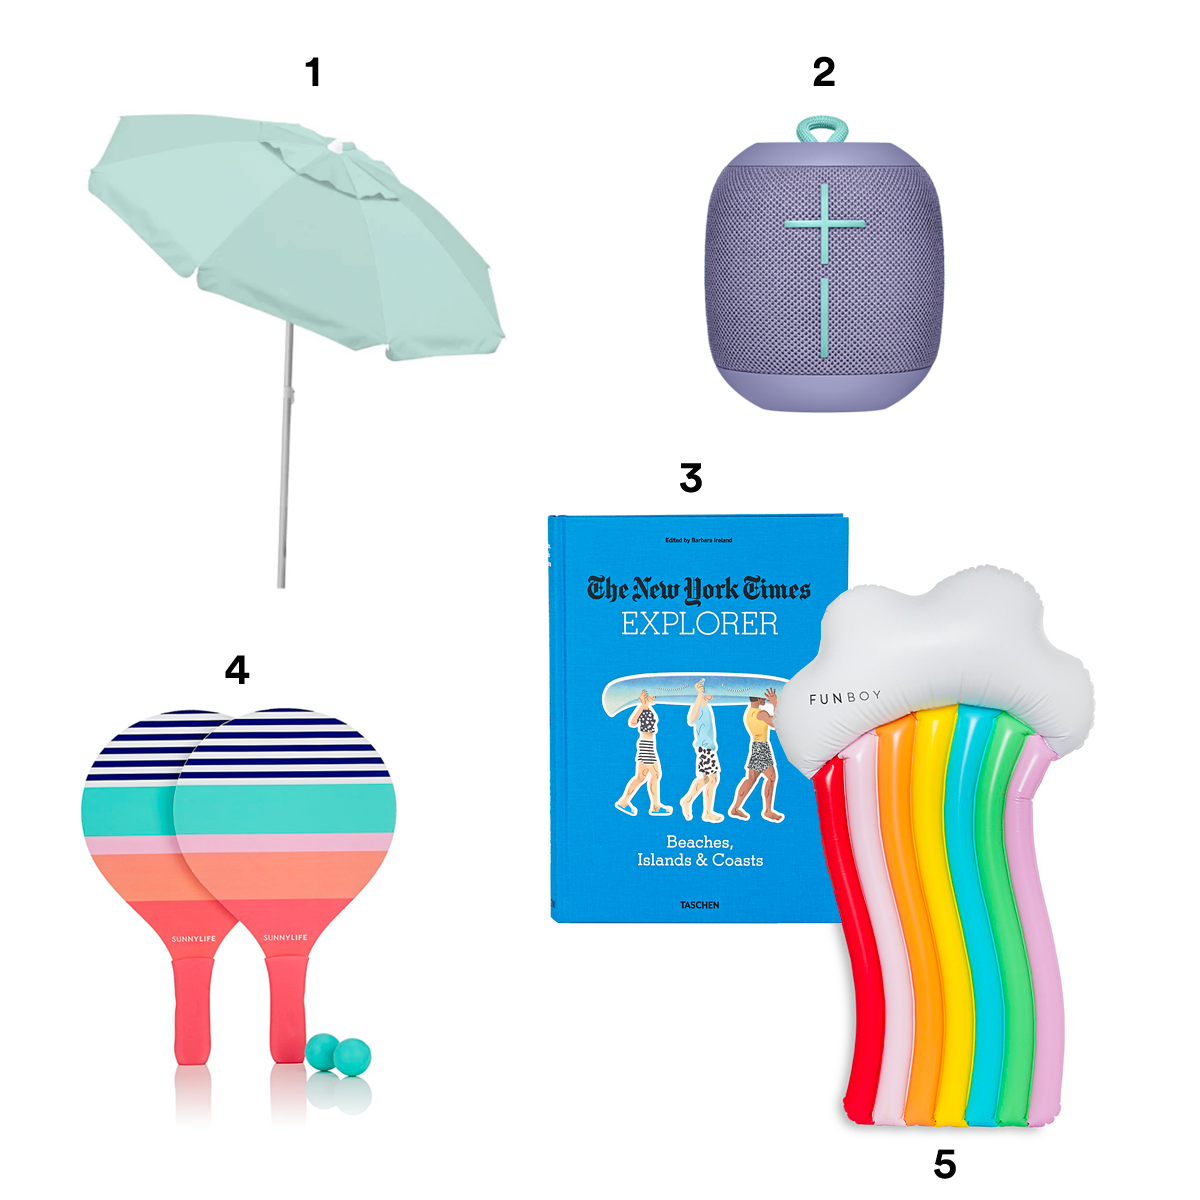 1) CARIBBEAN JOE Beach Umbrella, available at Target. 2) UTLIMATE EARS Wonderboom Portable Bluetooth Speaker, available at Best Buy. 3) TASCHEN The New York Times Explorer: Beaches, Islands, and Coasts, available at Barneys New York. 4) SUNNYLIFE Catalina Beach Bats, available at Barneys New York. 5) FUNBOY Inflatable Rainbow Cloud Float, available at Bloomingdale's.